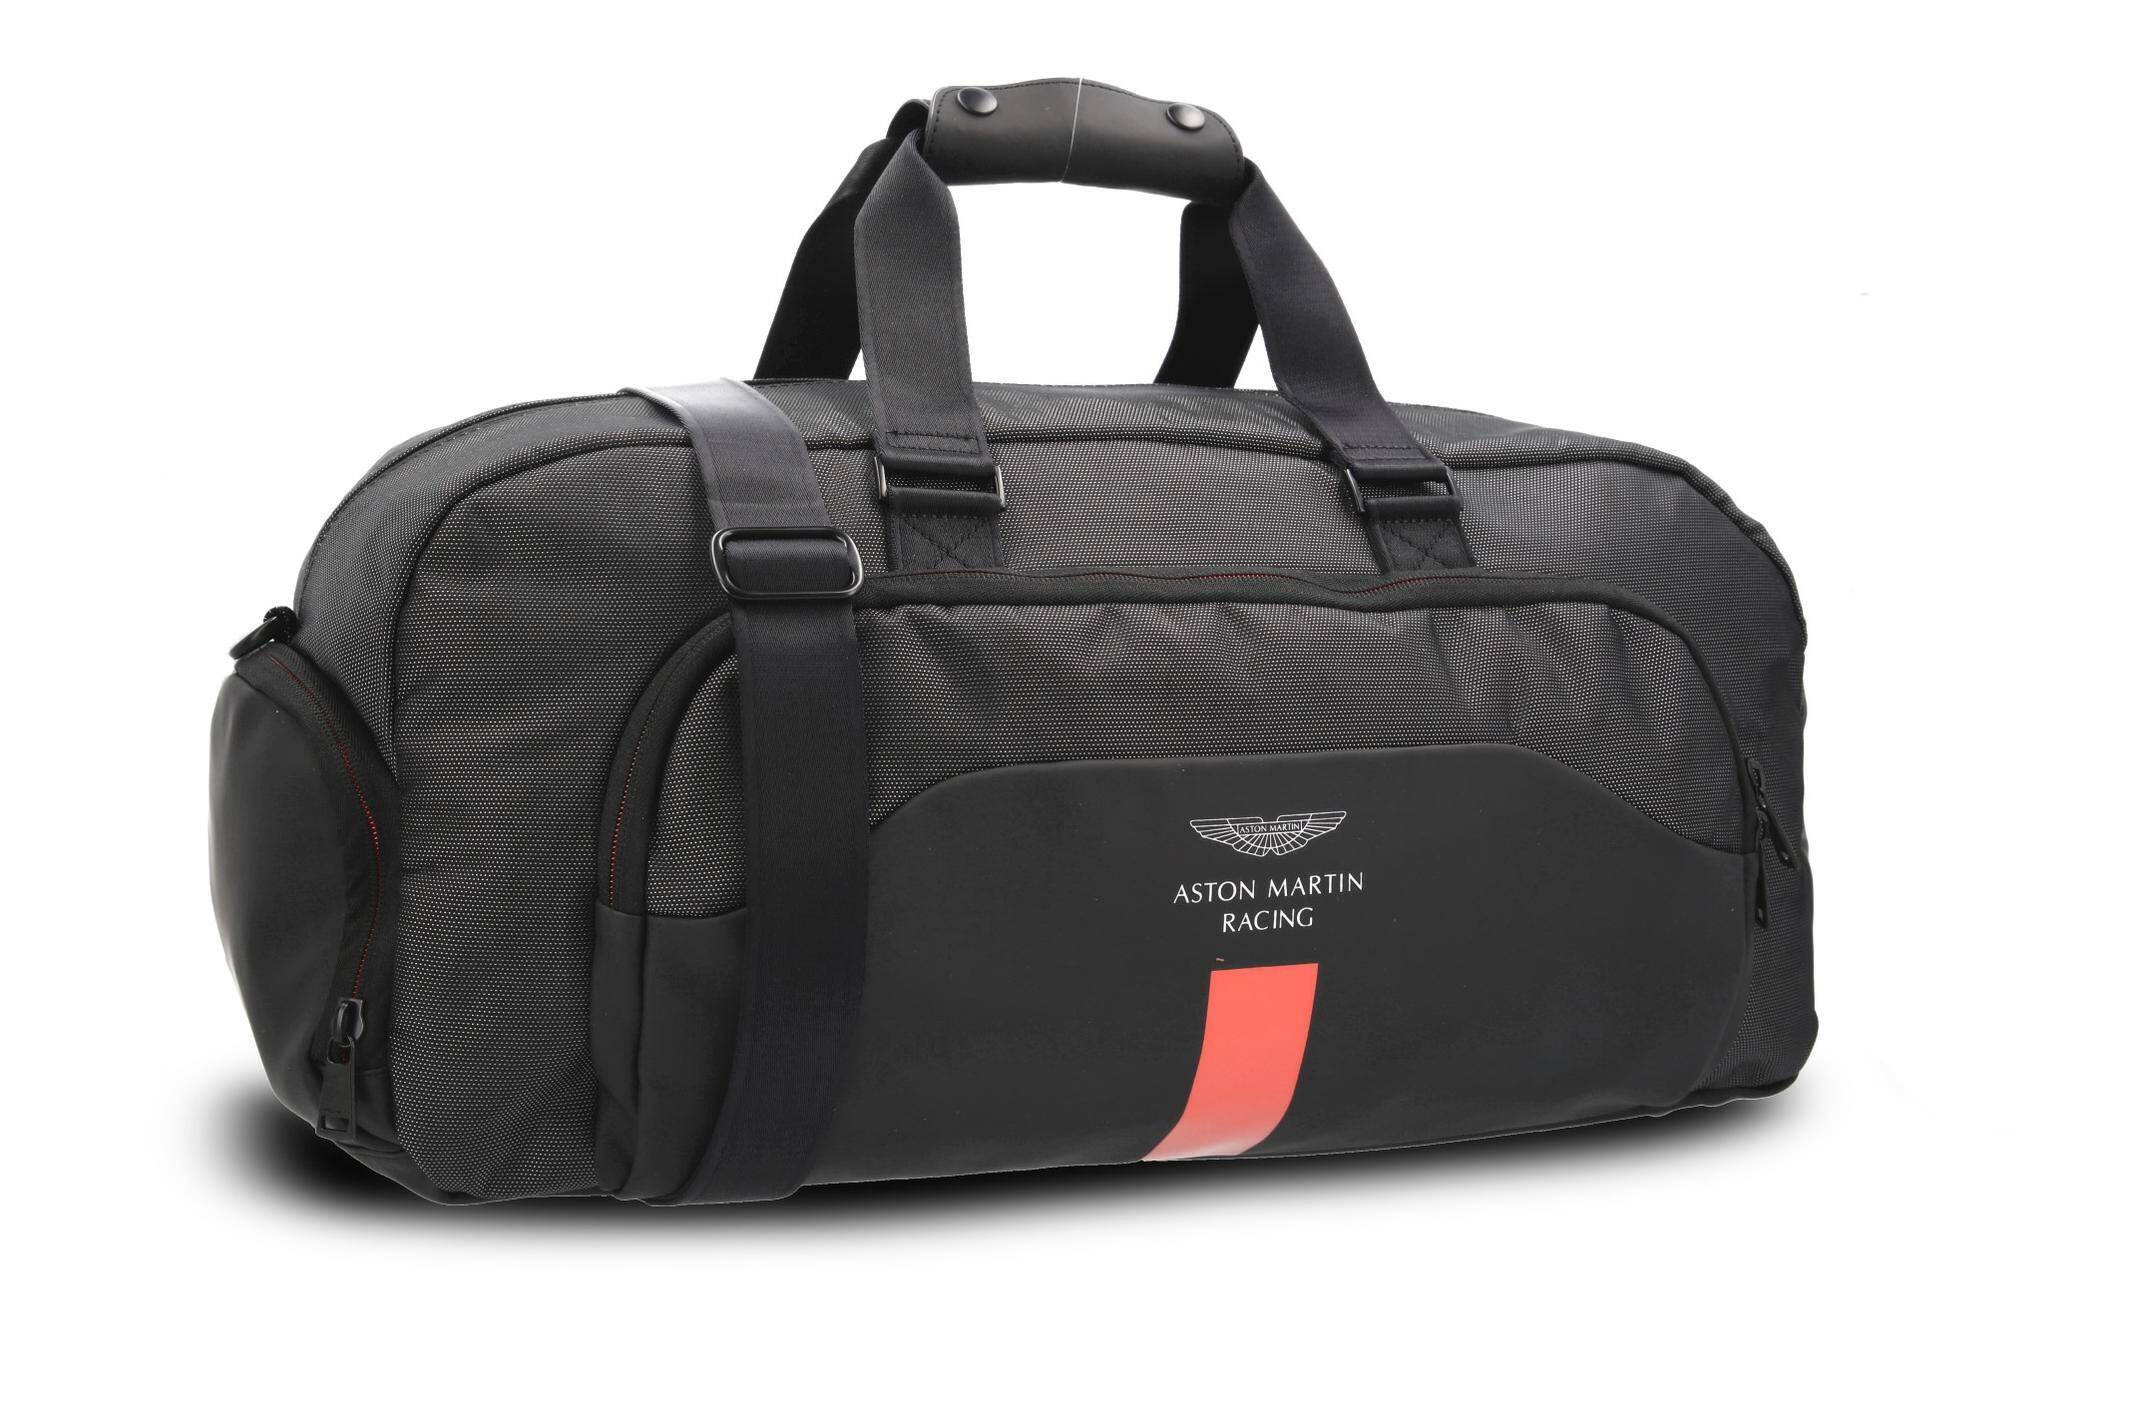 621a7dd764 Travel bag Aston Martin Racing Hackett London | Black | Gomez.pl/en